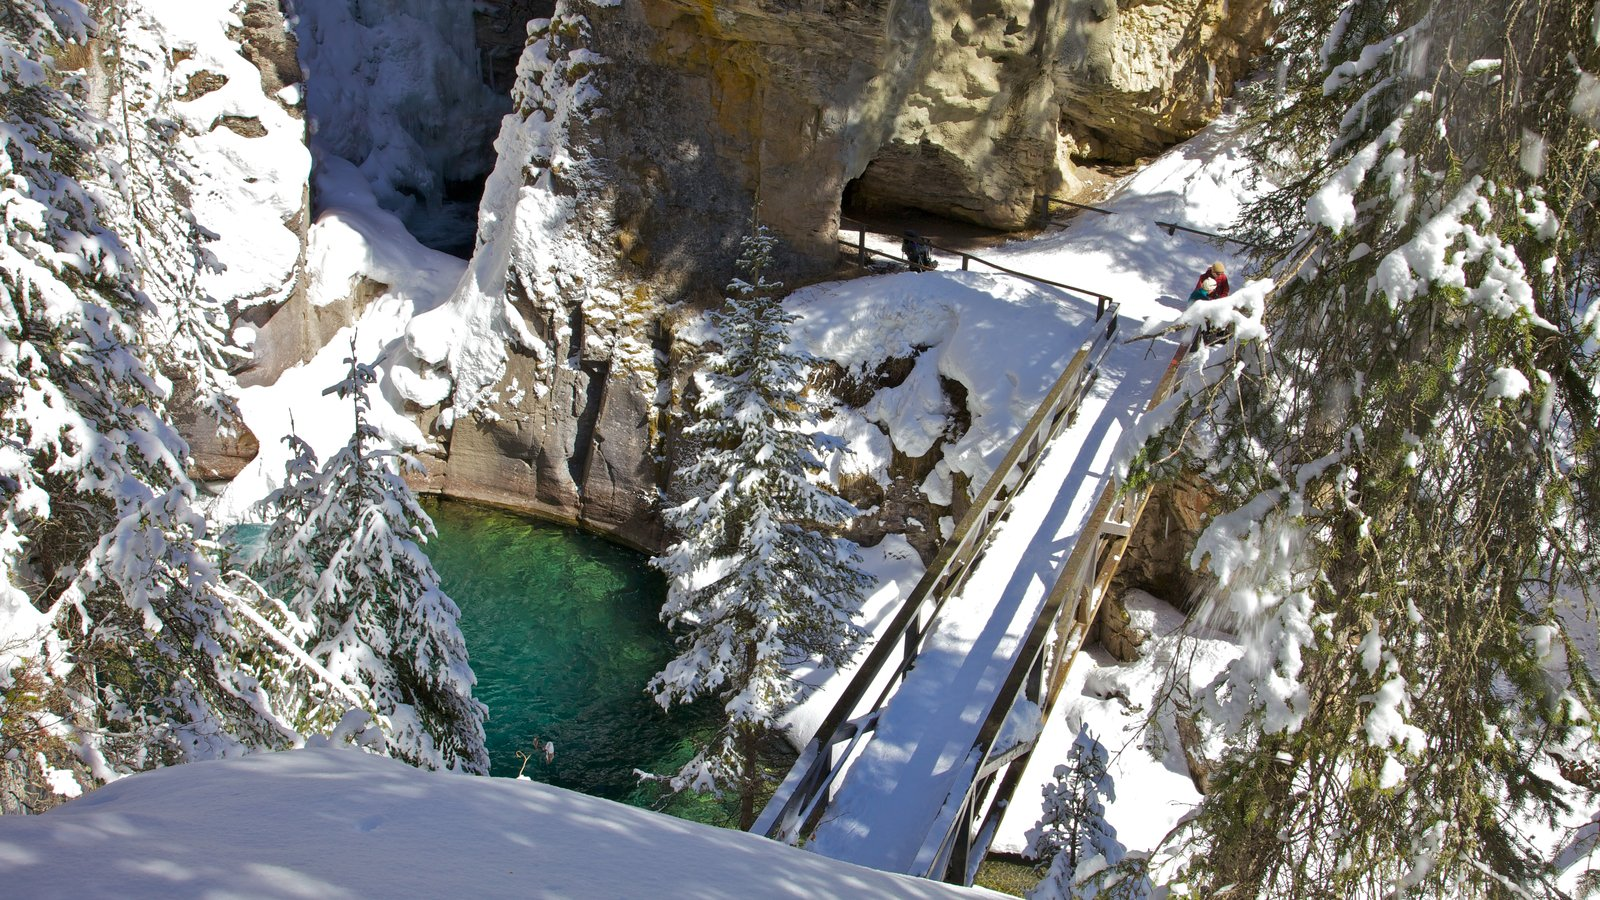 Johnston Canyon showing landscape views, a river or creek and snow